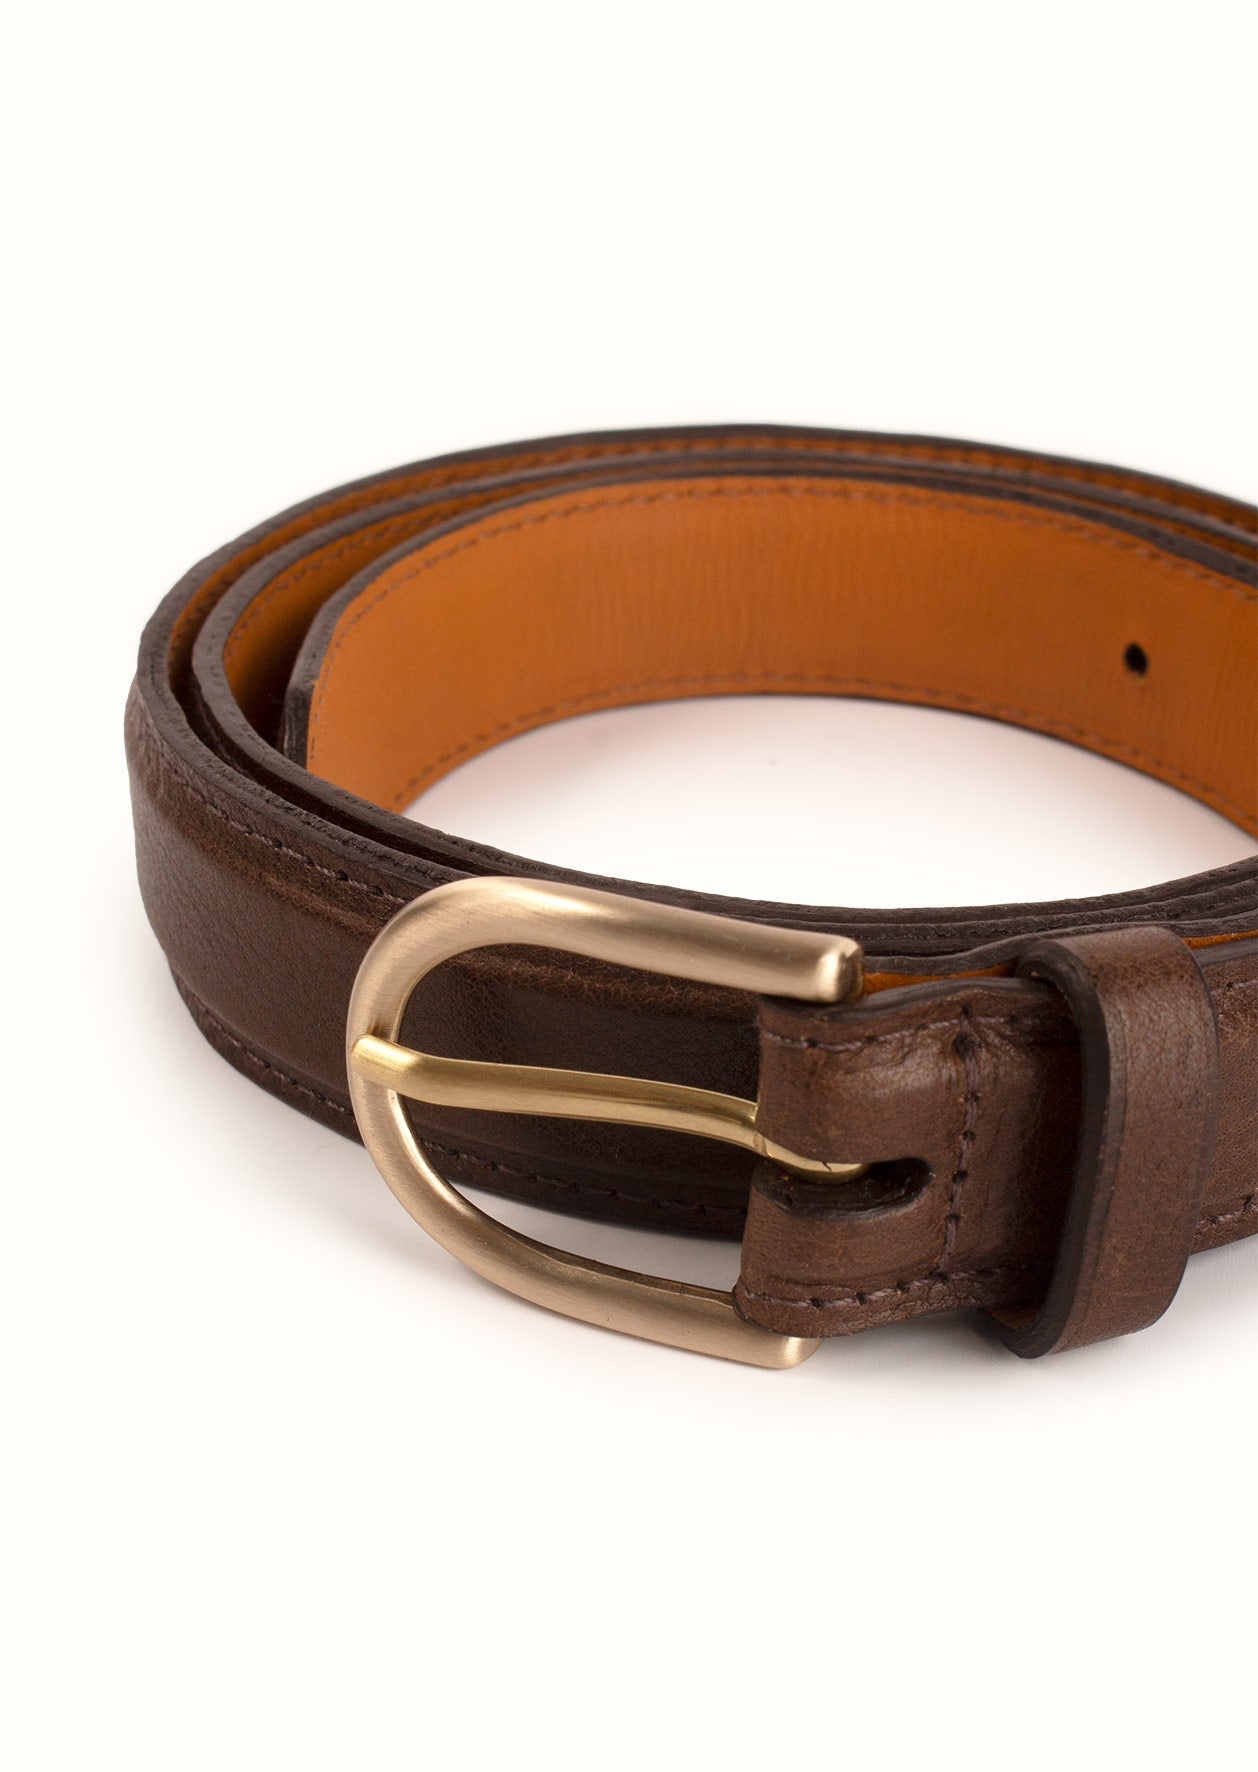 De Bonne Facture - Essential belt - Suede leather - Tobacco